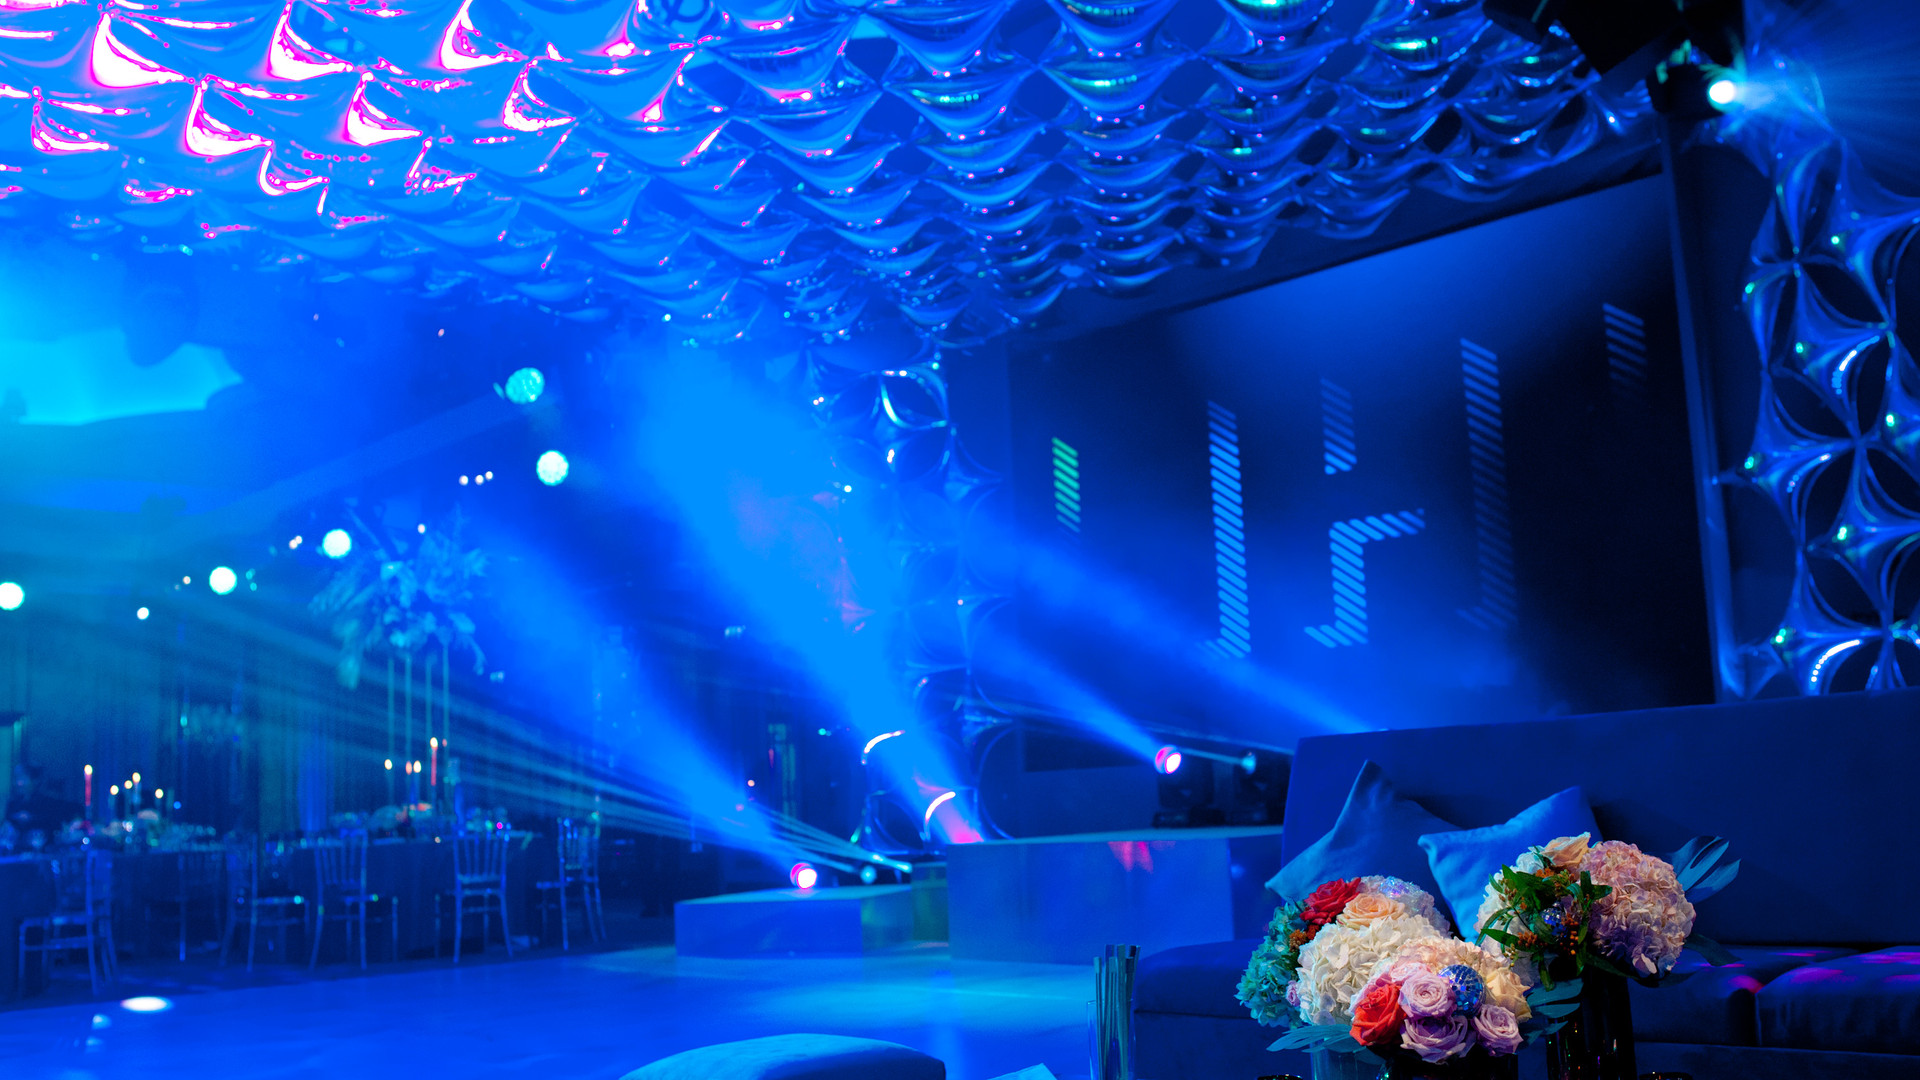 LED screen ceiling balloon installation